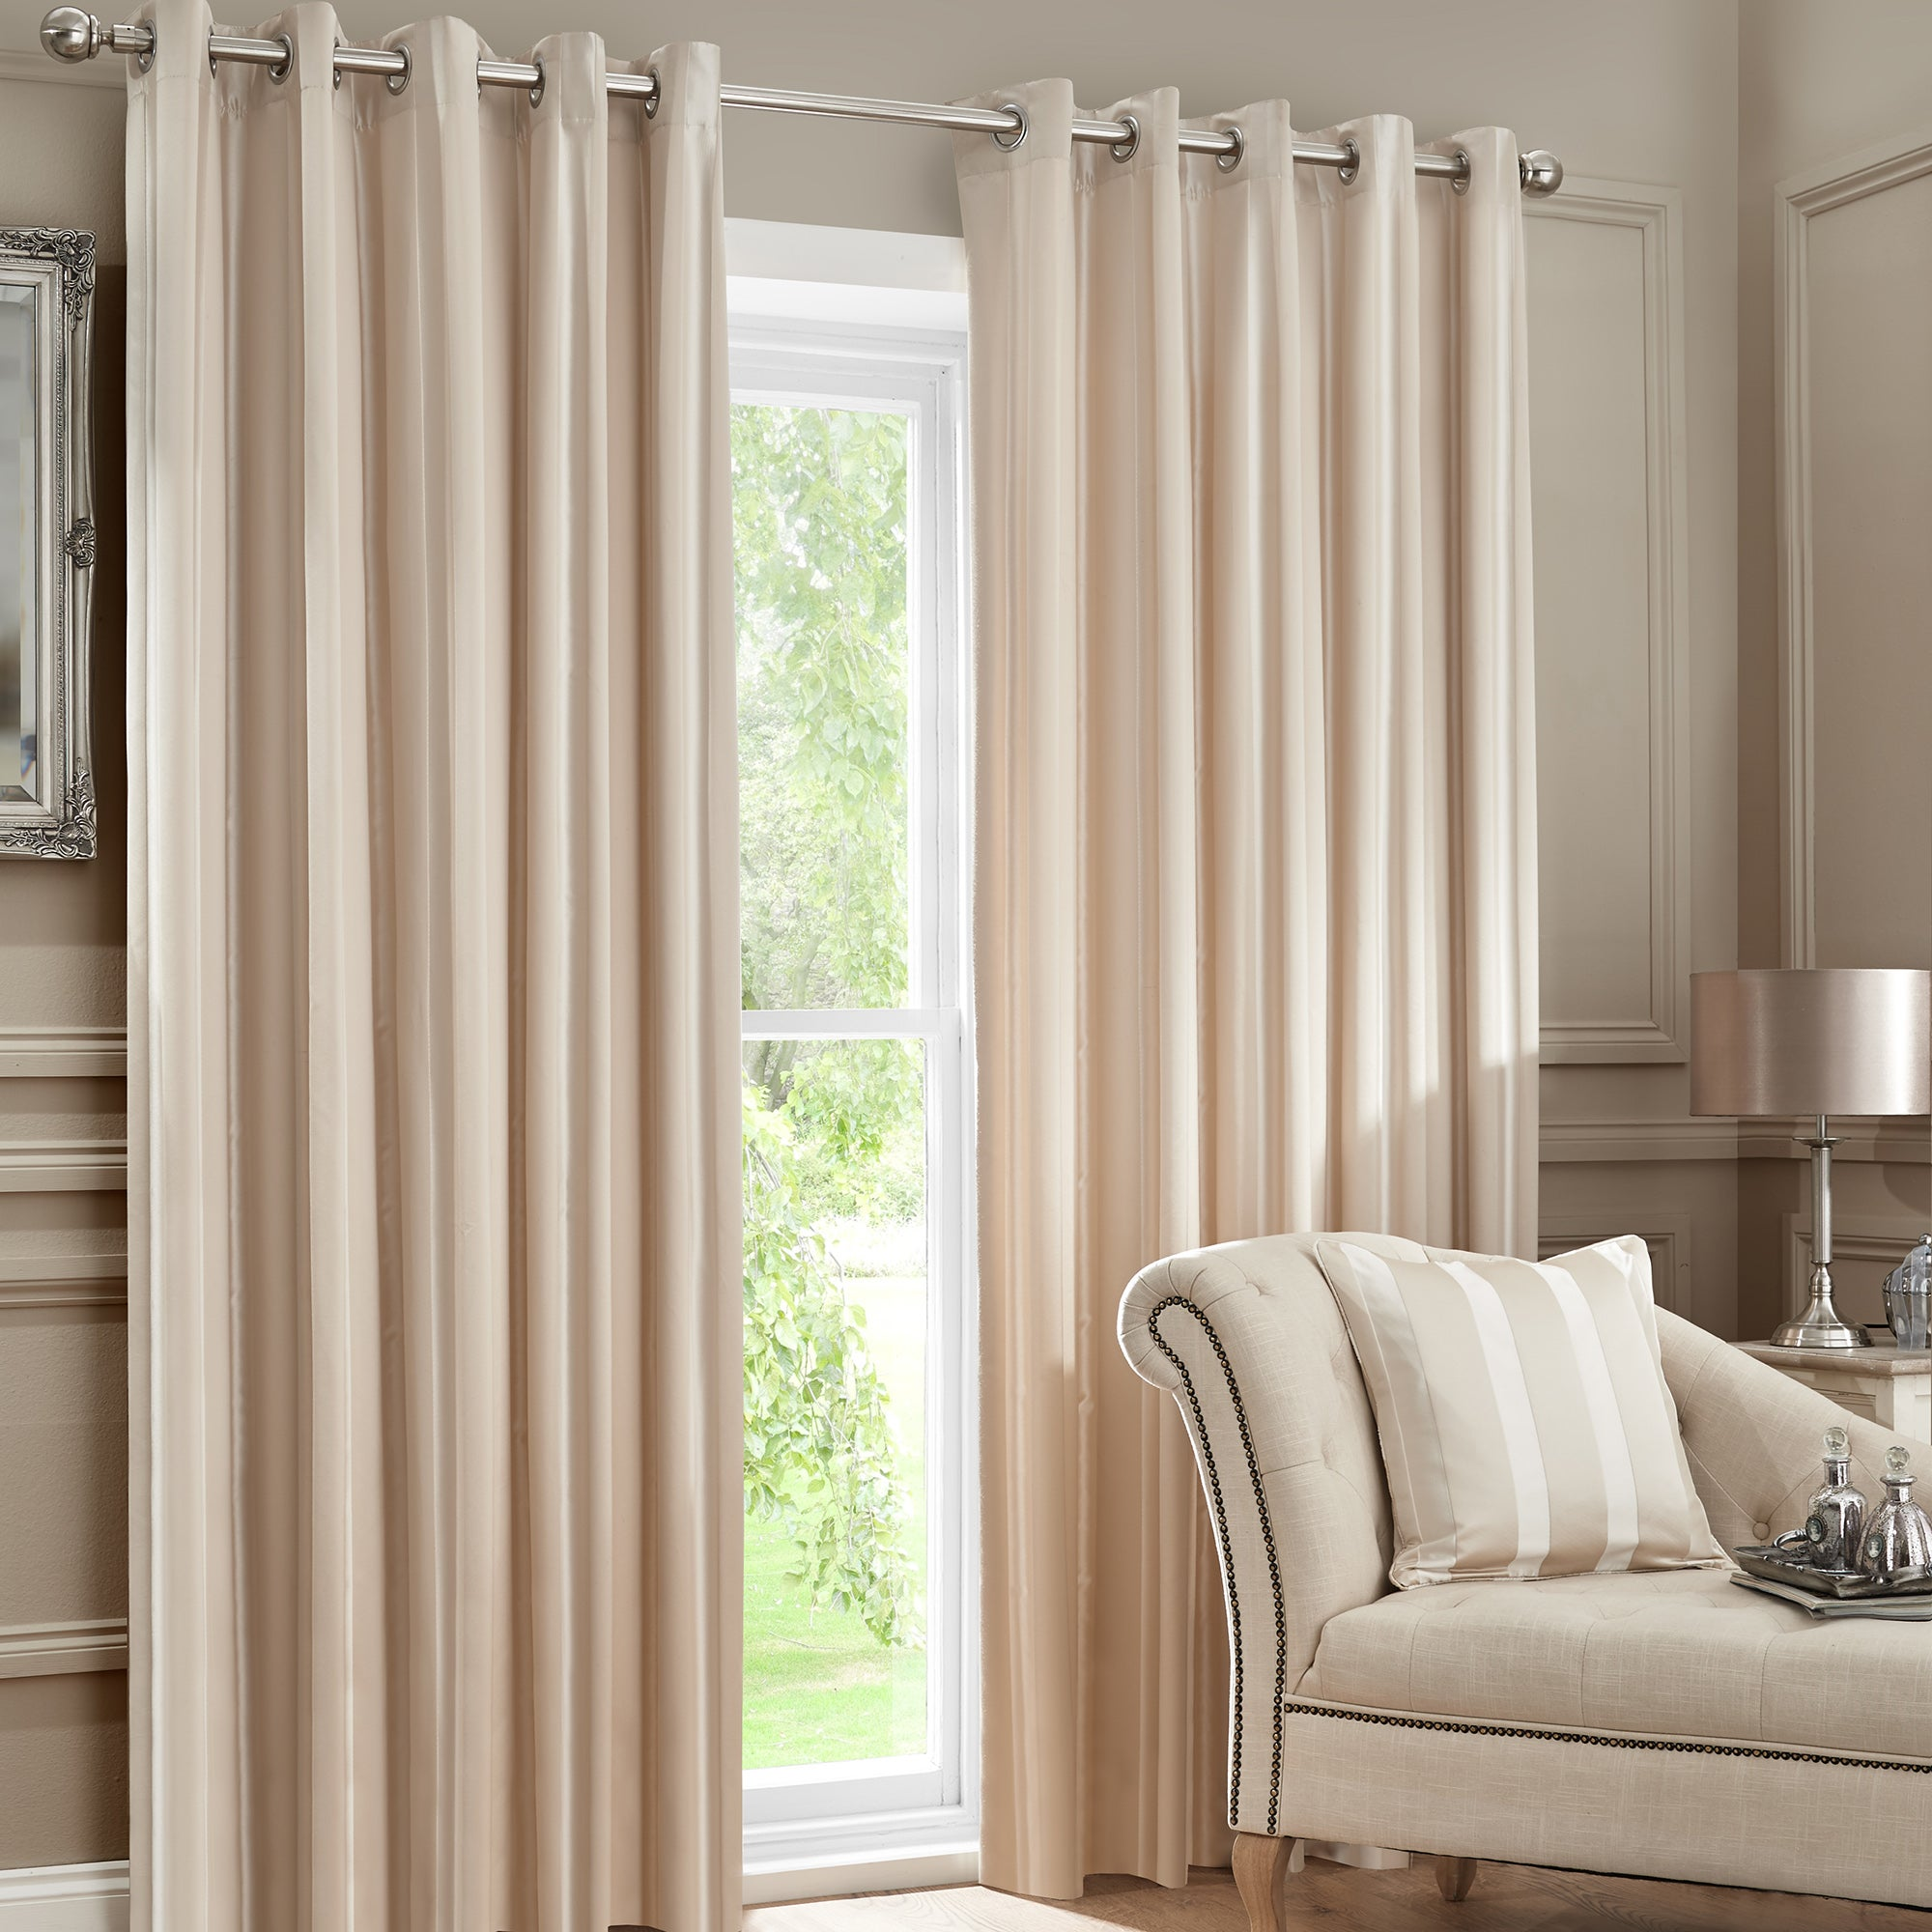 Hotel Champagne Melbury Eyelet Curtain Collection